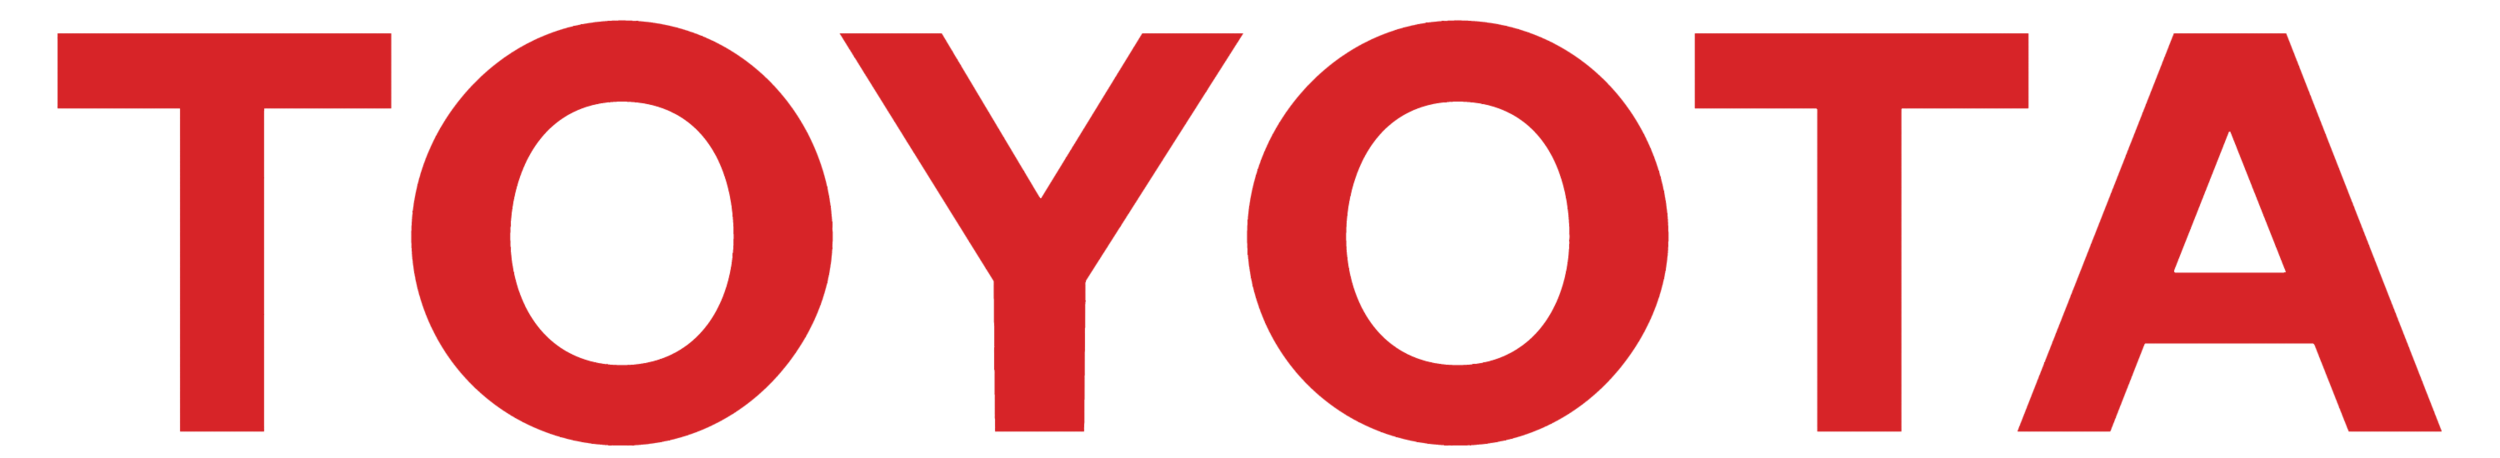 Toyota-text-logo-3000x550.png